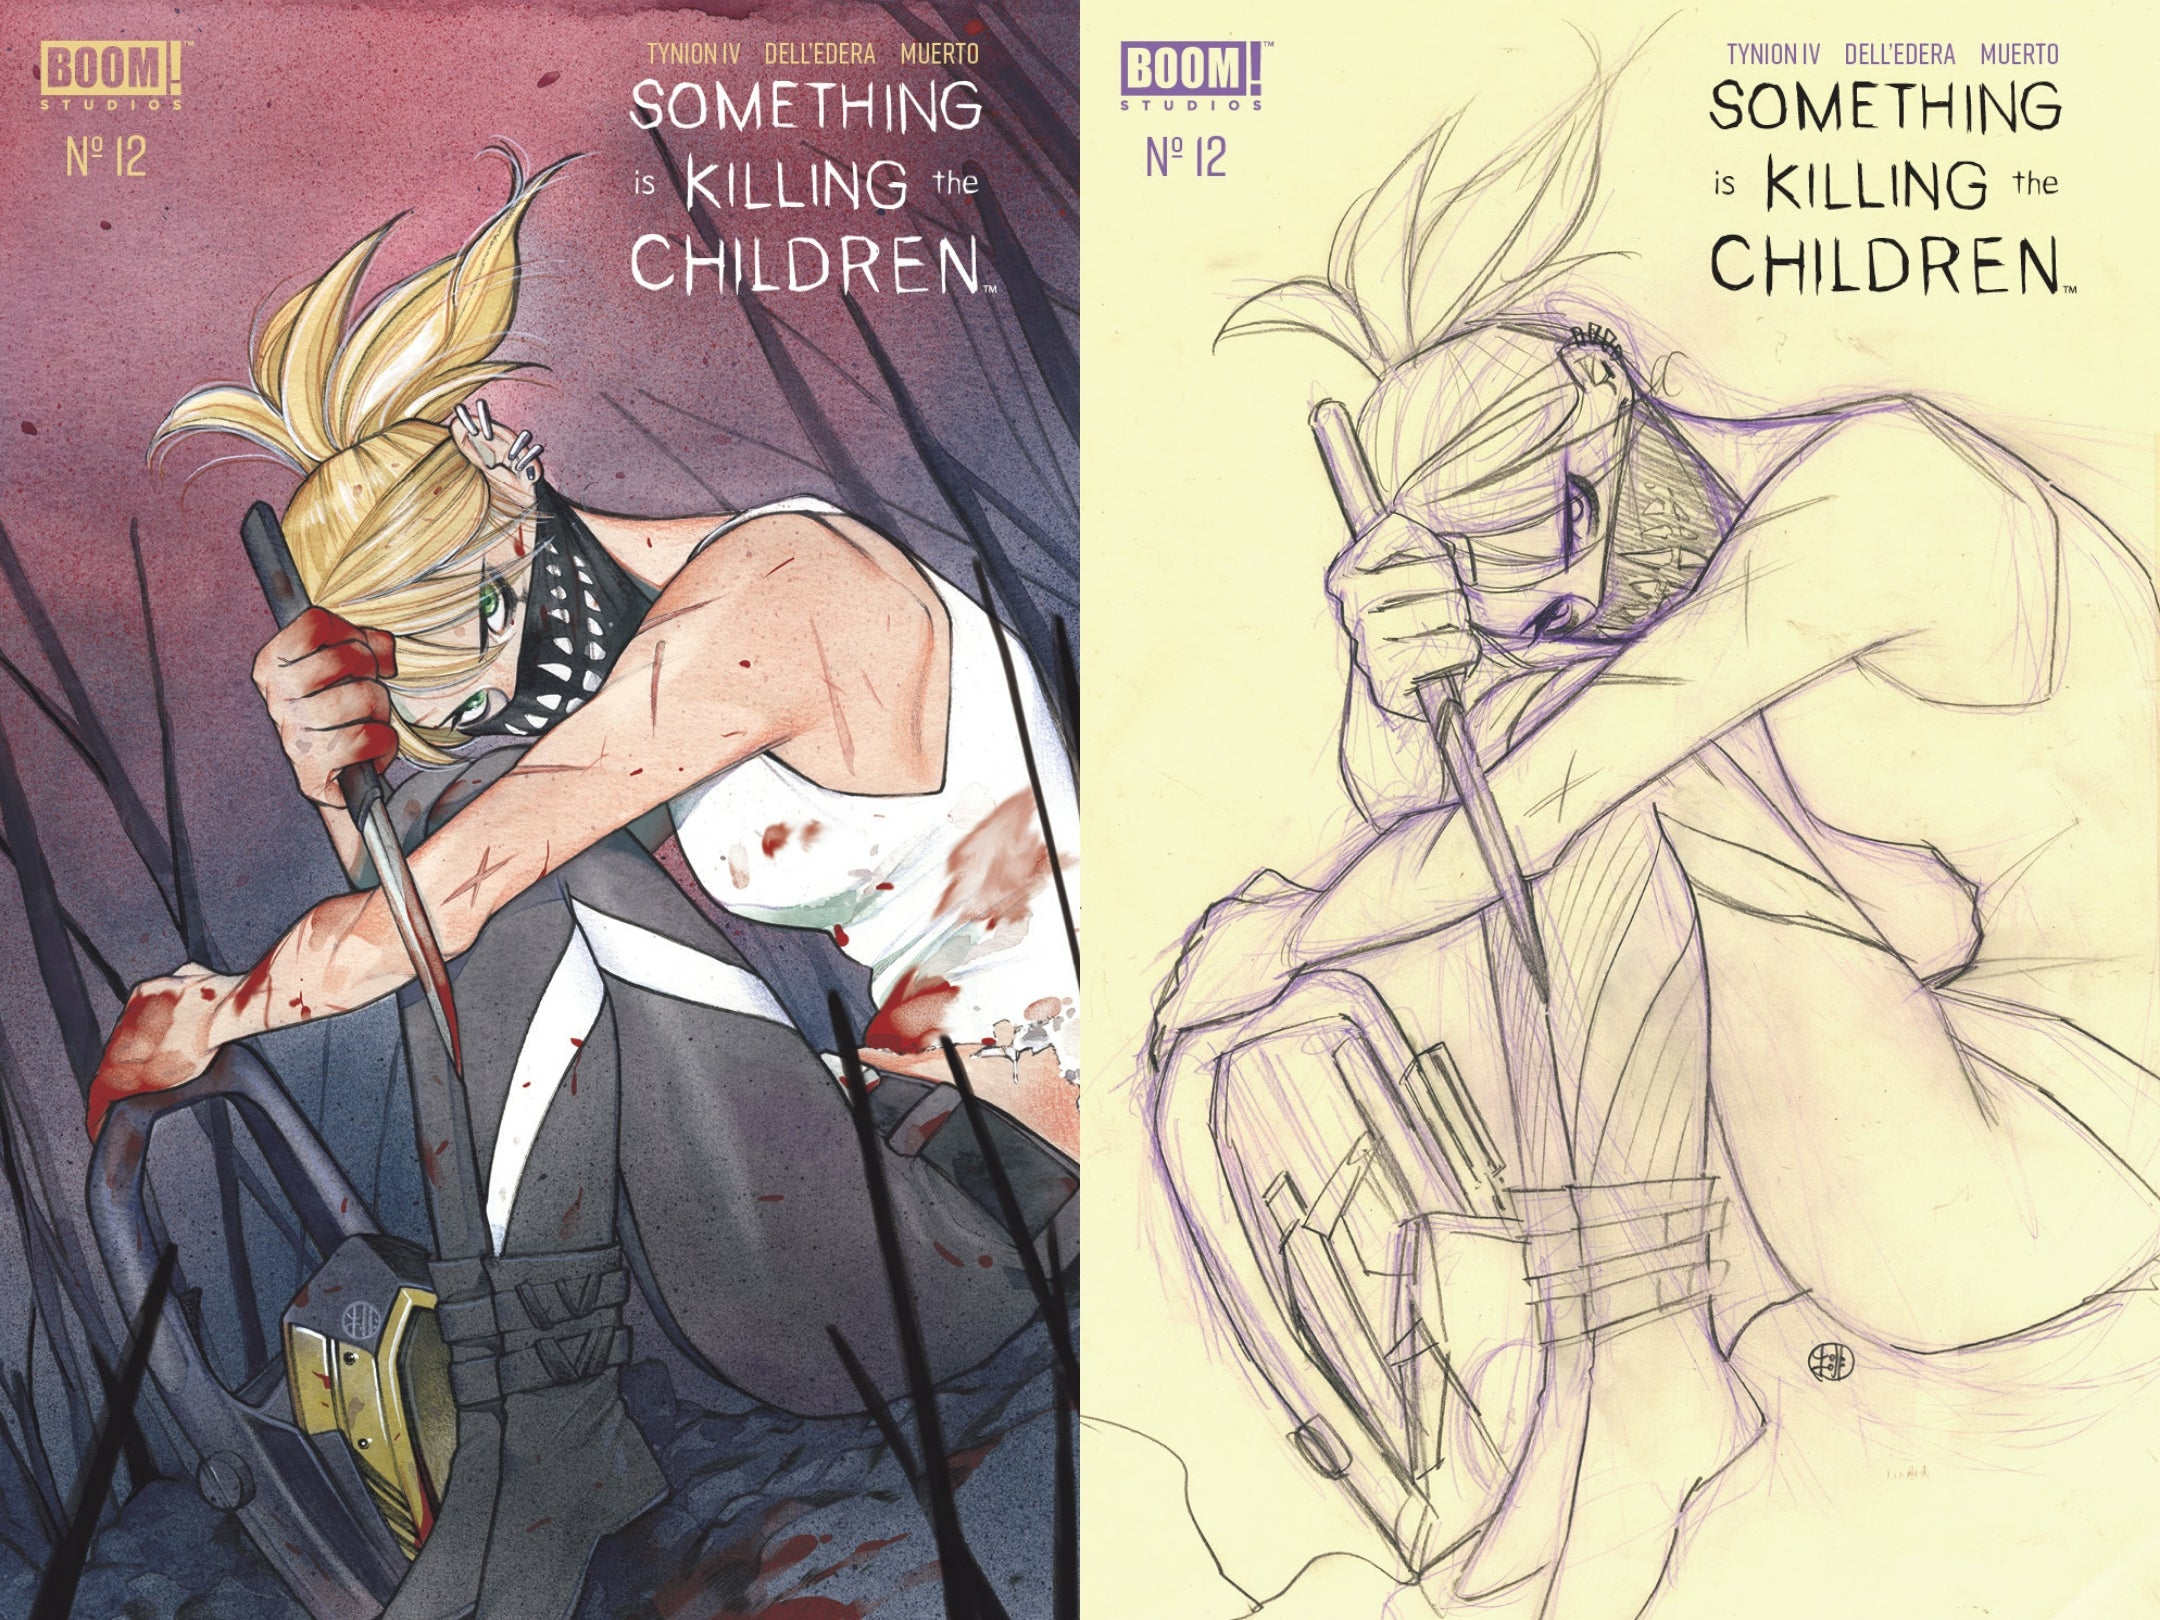 11/18/2020 SOMETHING IS KILLING CHILDREN #12 SSCO PEACH MOMOKO TRADE DRESS & PENCIL TRADE DRESS VARIANT SET